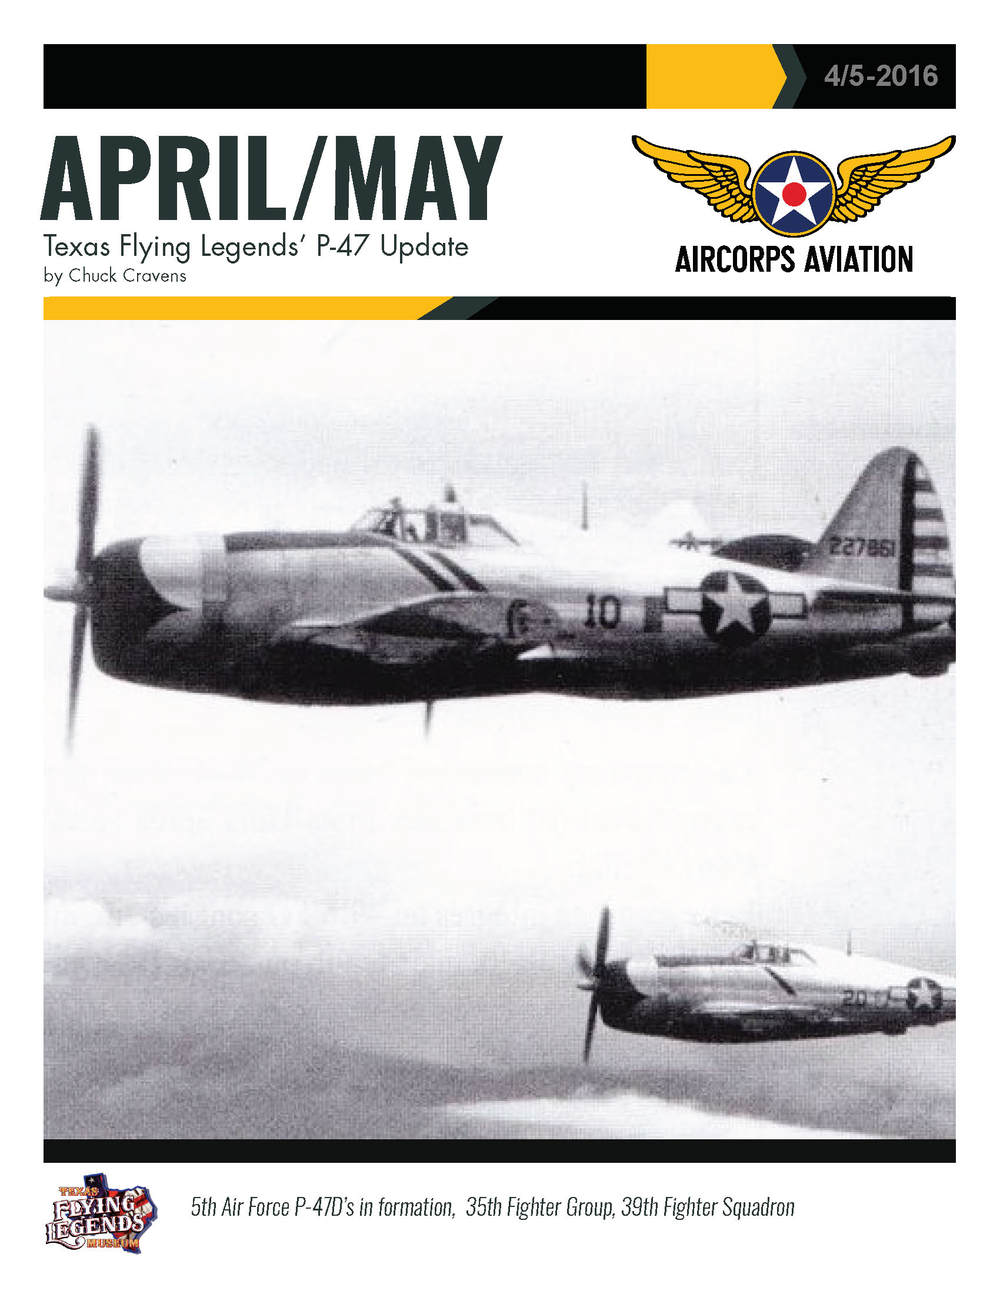 April/May Texas Flying Legends' P-47 Update Page 1